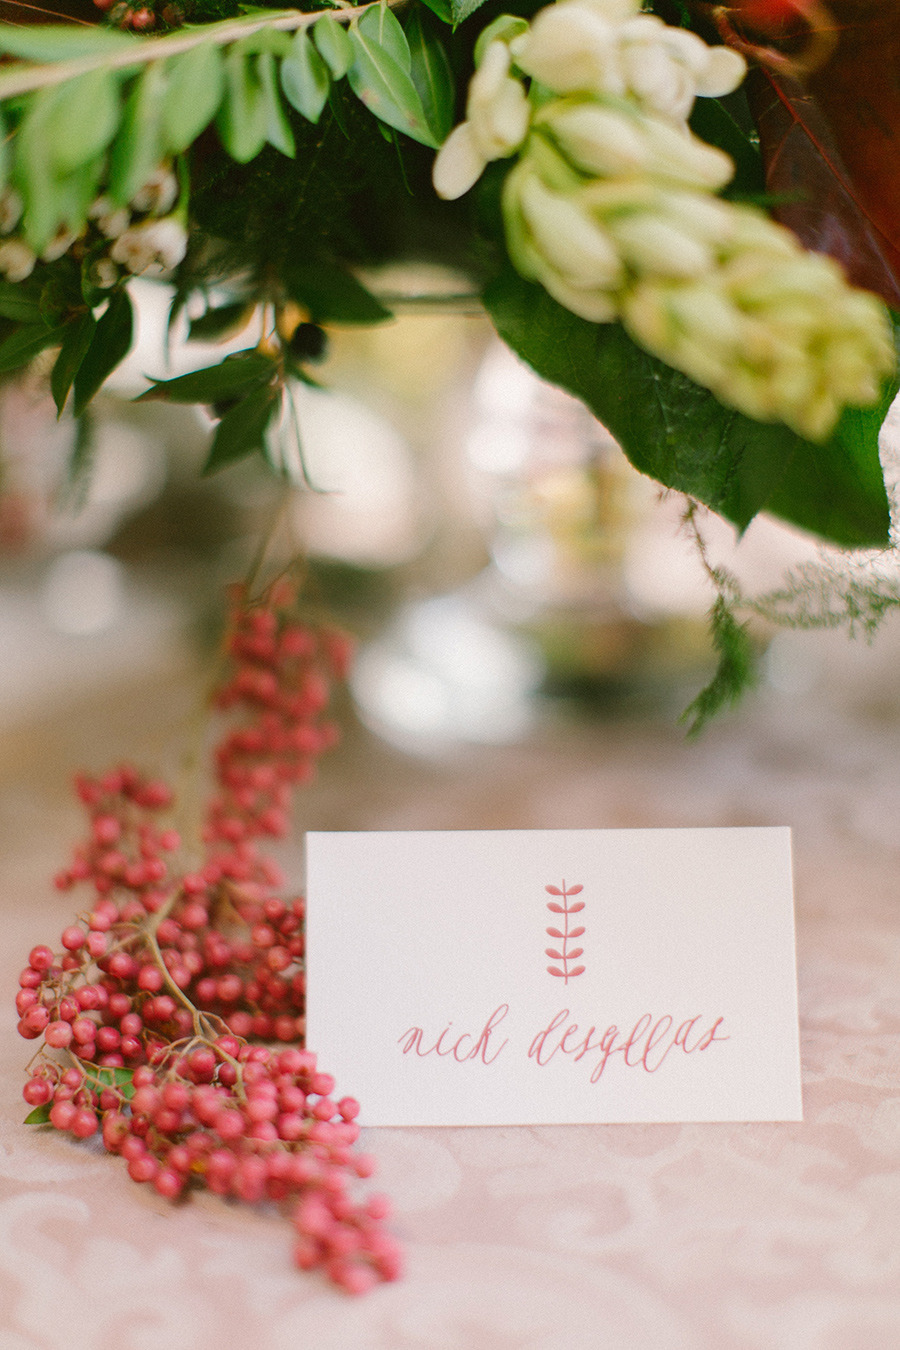 calligraphy winter wedding escort card - Boho Chic Wedding Inspiration Shoot from Anna Roussos Photography - annaroussos.com | Read more : https://www.fabmood.com/boho-chic-wedding-inspiration-shoot-anna-roussos-photography